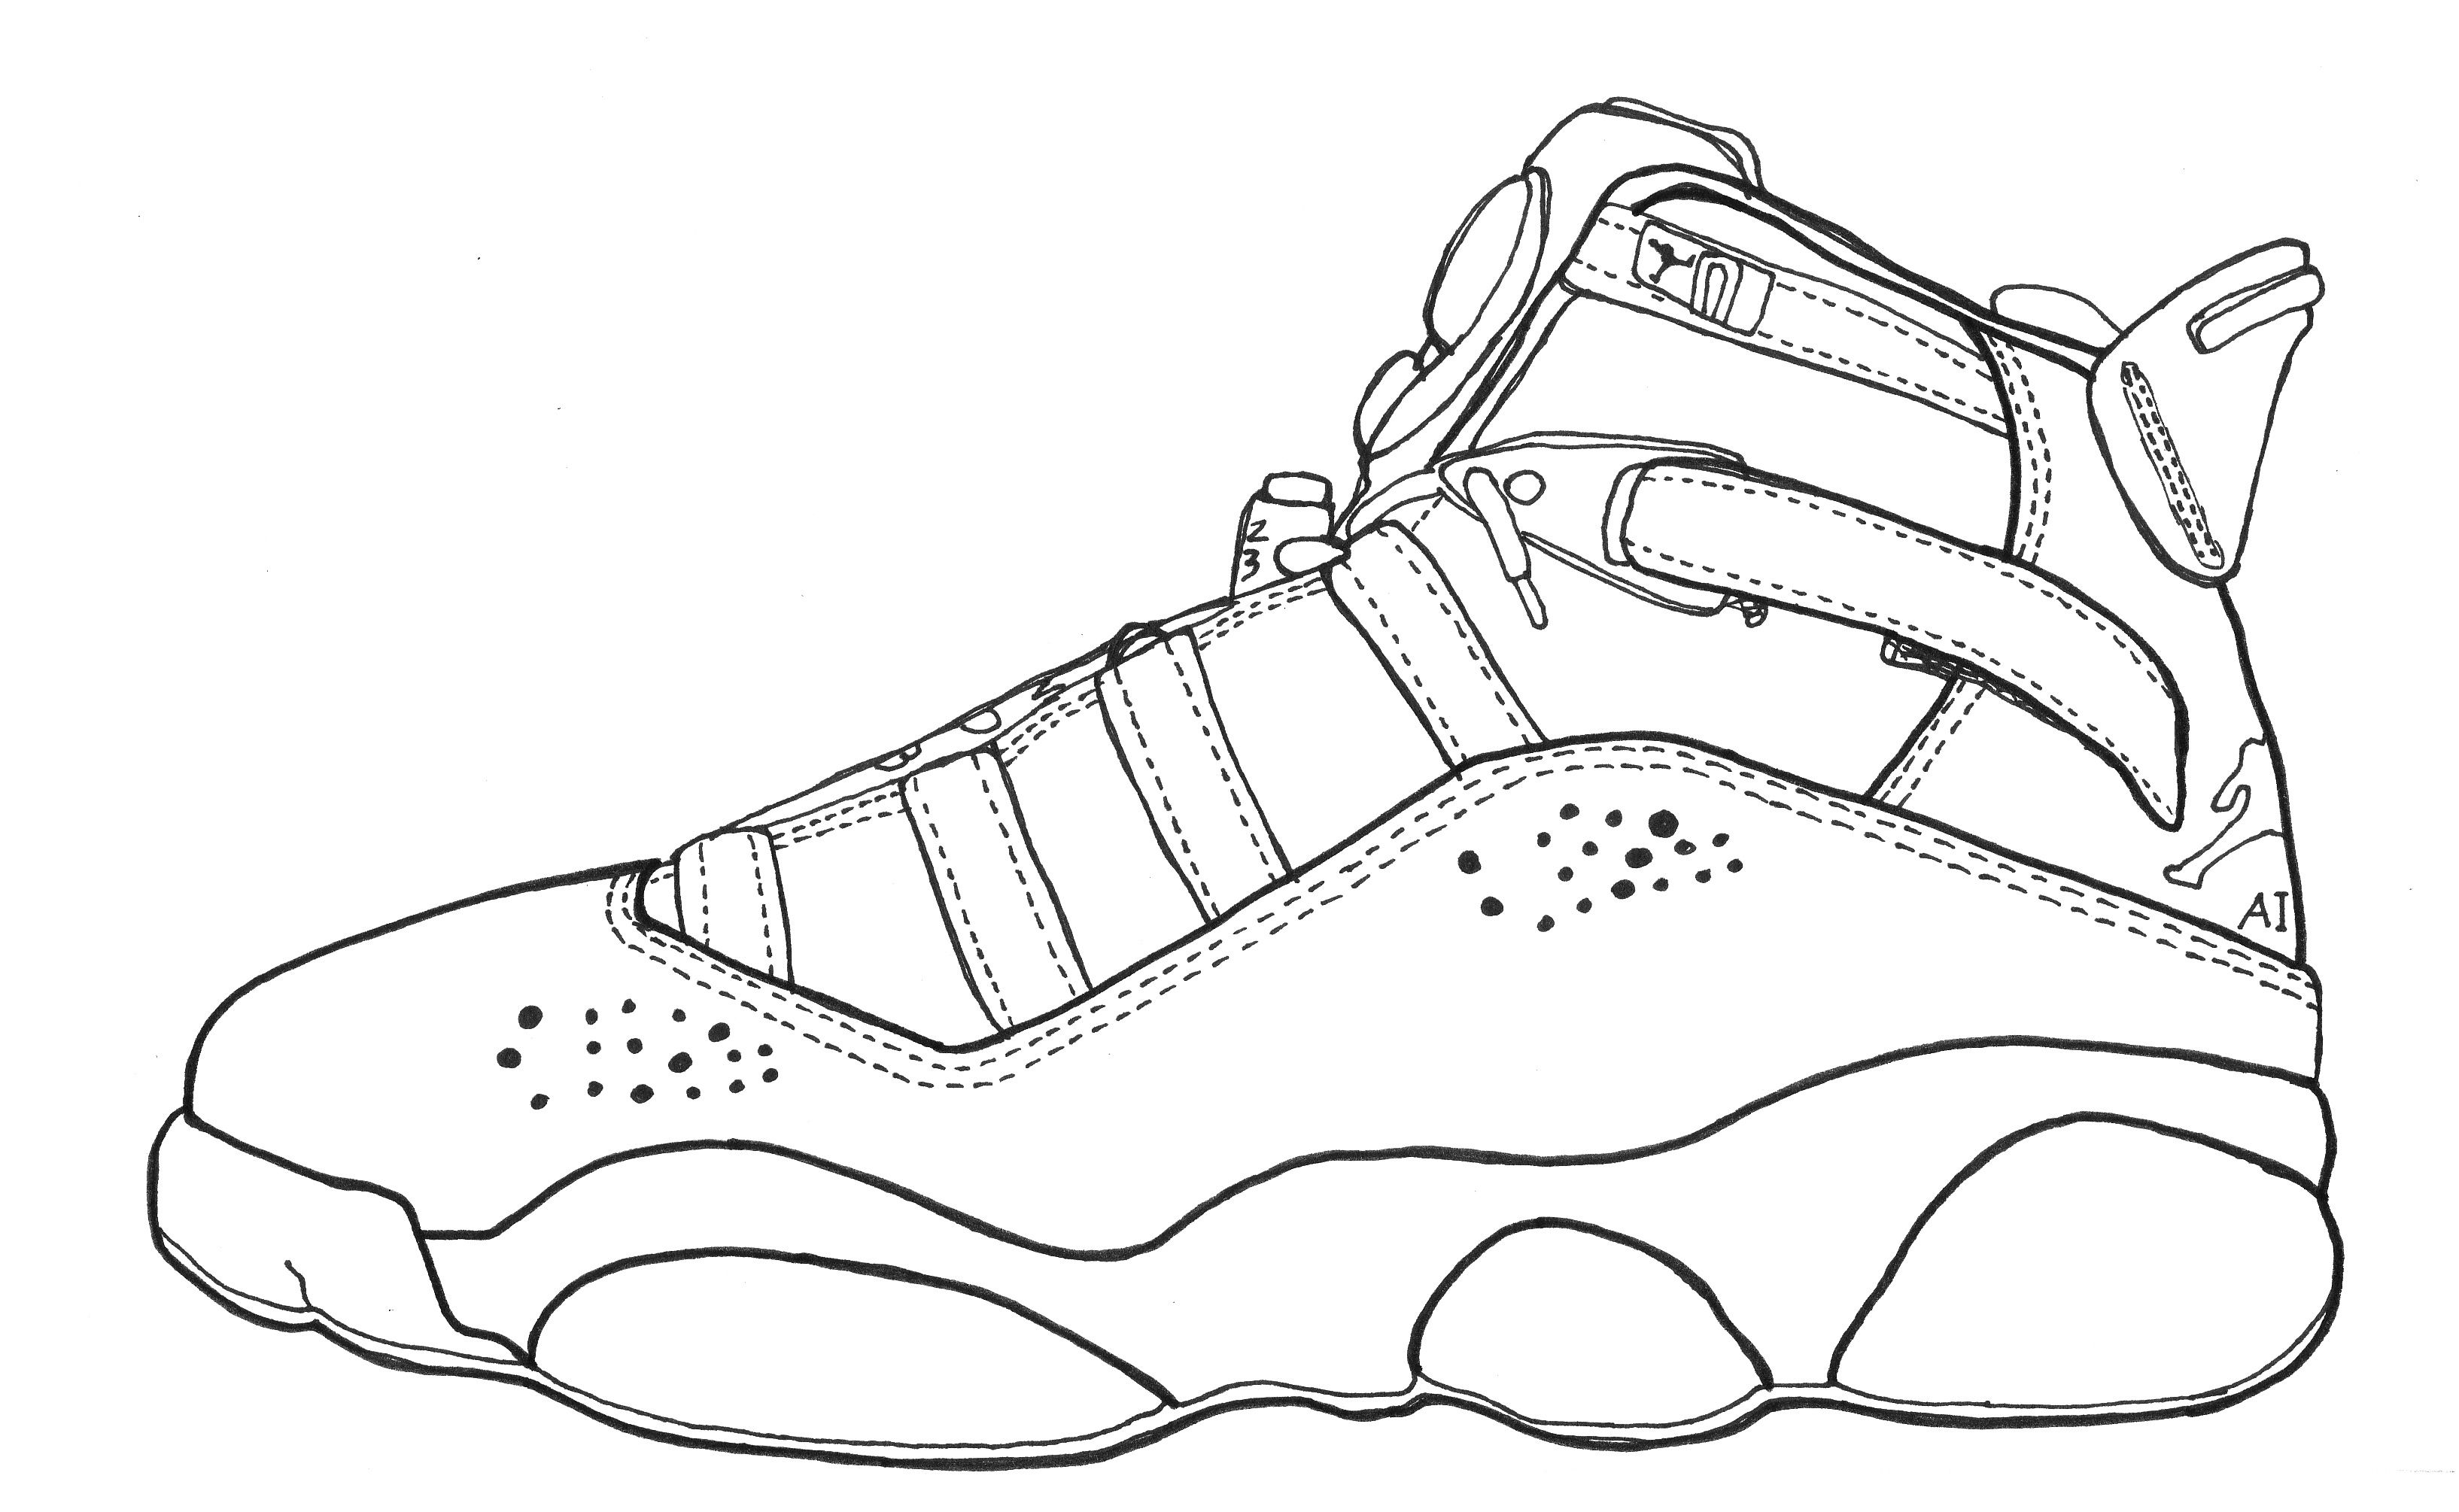 Jordan 12 Coloring Pages With Images Pictures Of Shoes Coloring Books Jordan Coloring Book